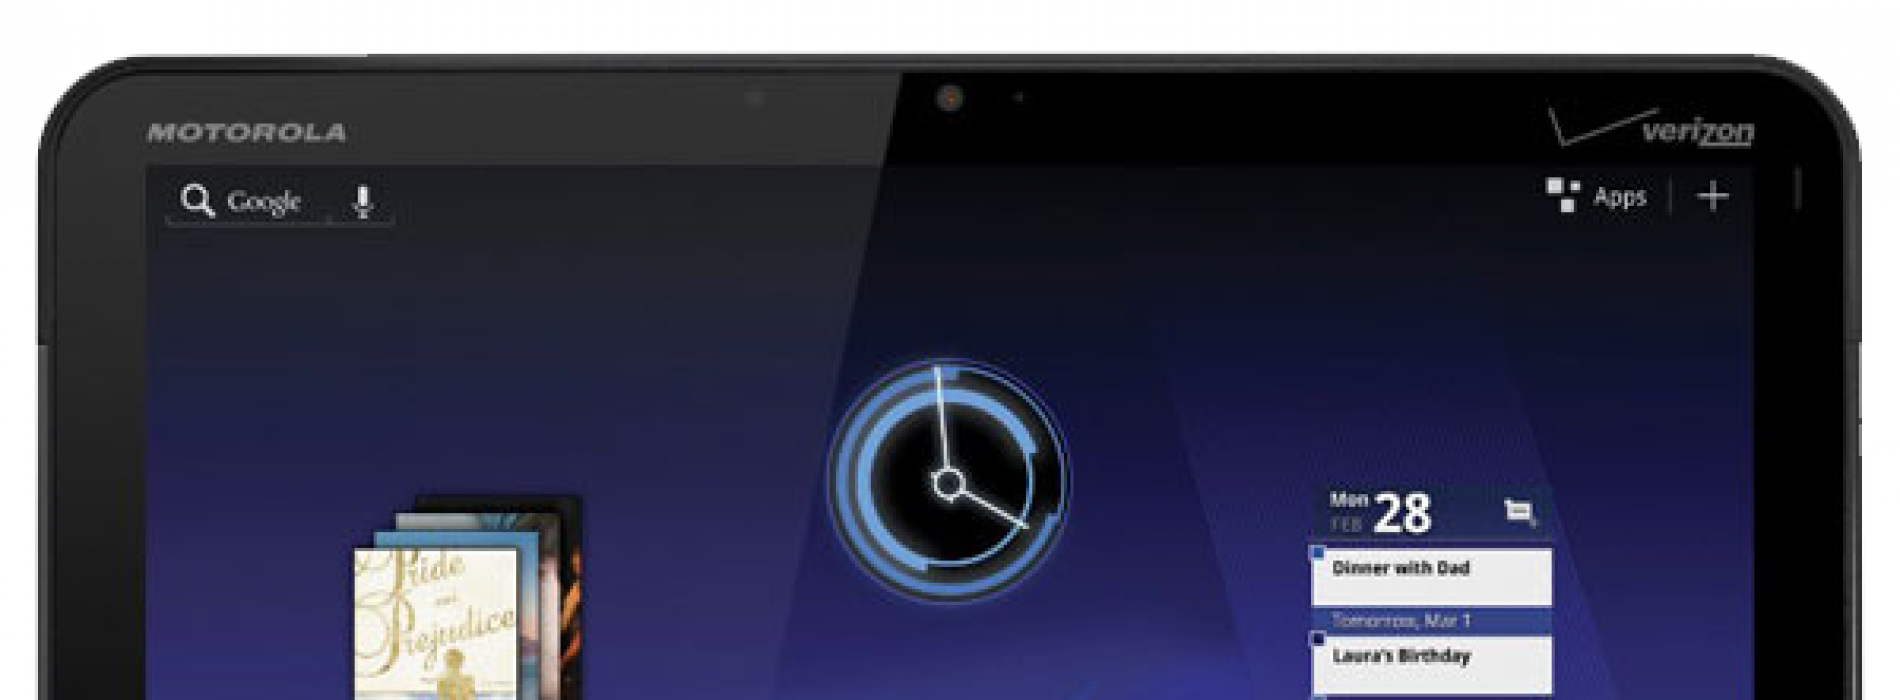 Motorola XOOM (WiFi) – Get on Board because the Ice Cream Sandwich Update is happening! (OTA)